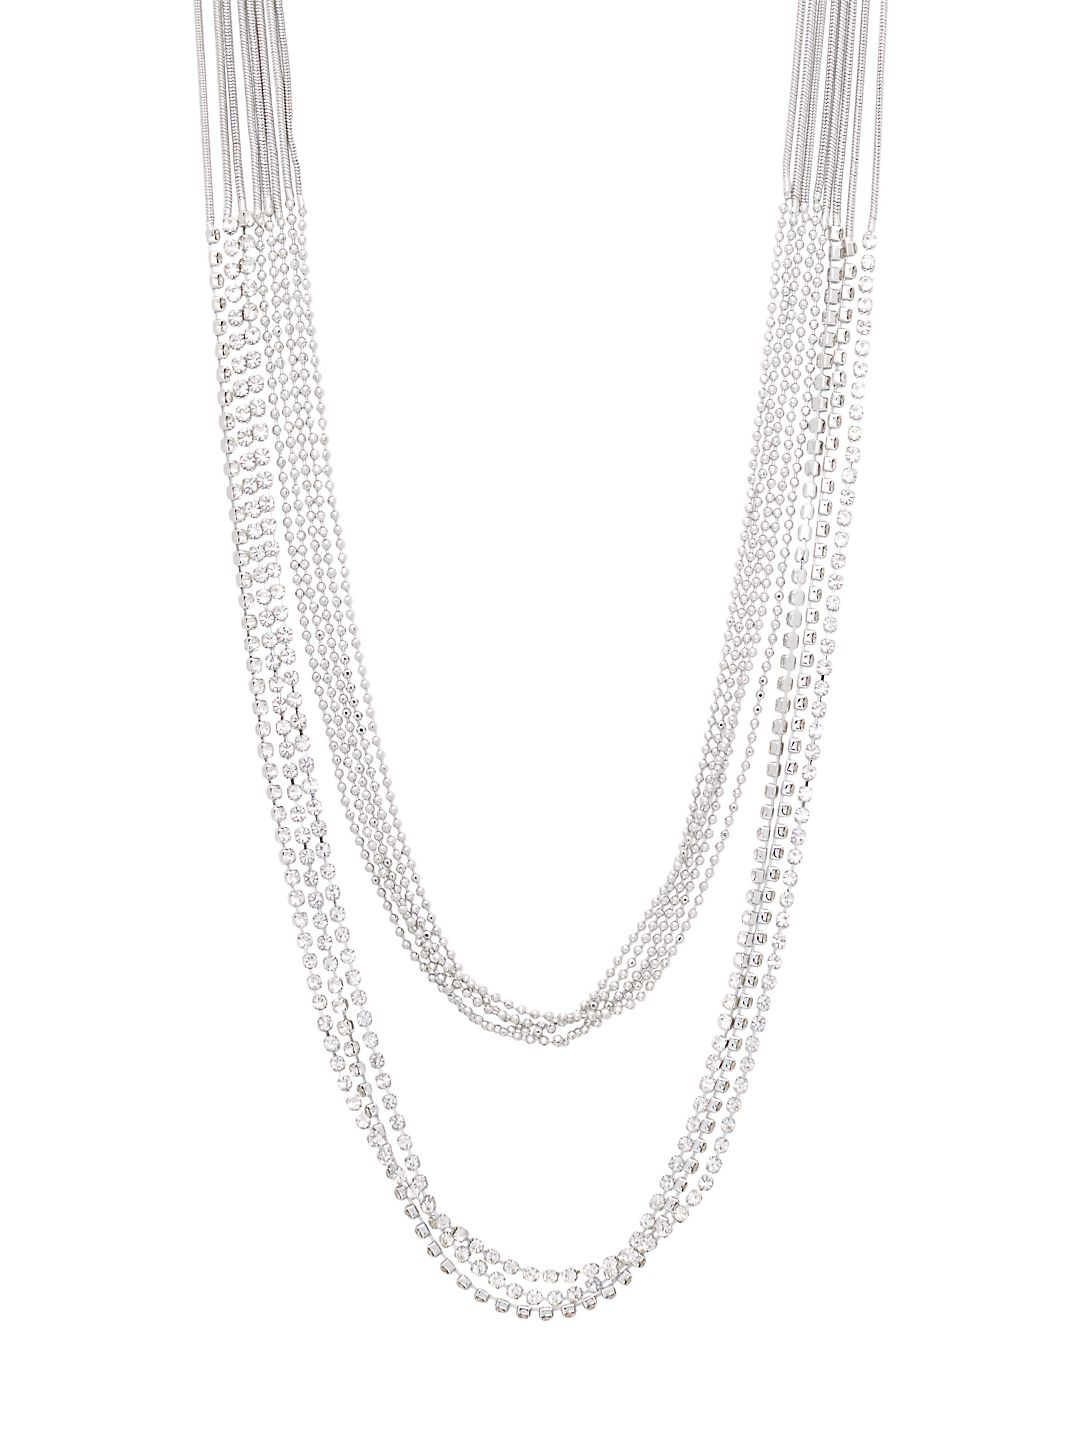 Silverplated and Rhinestone Multi-Strand Necklace